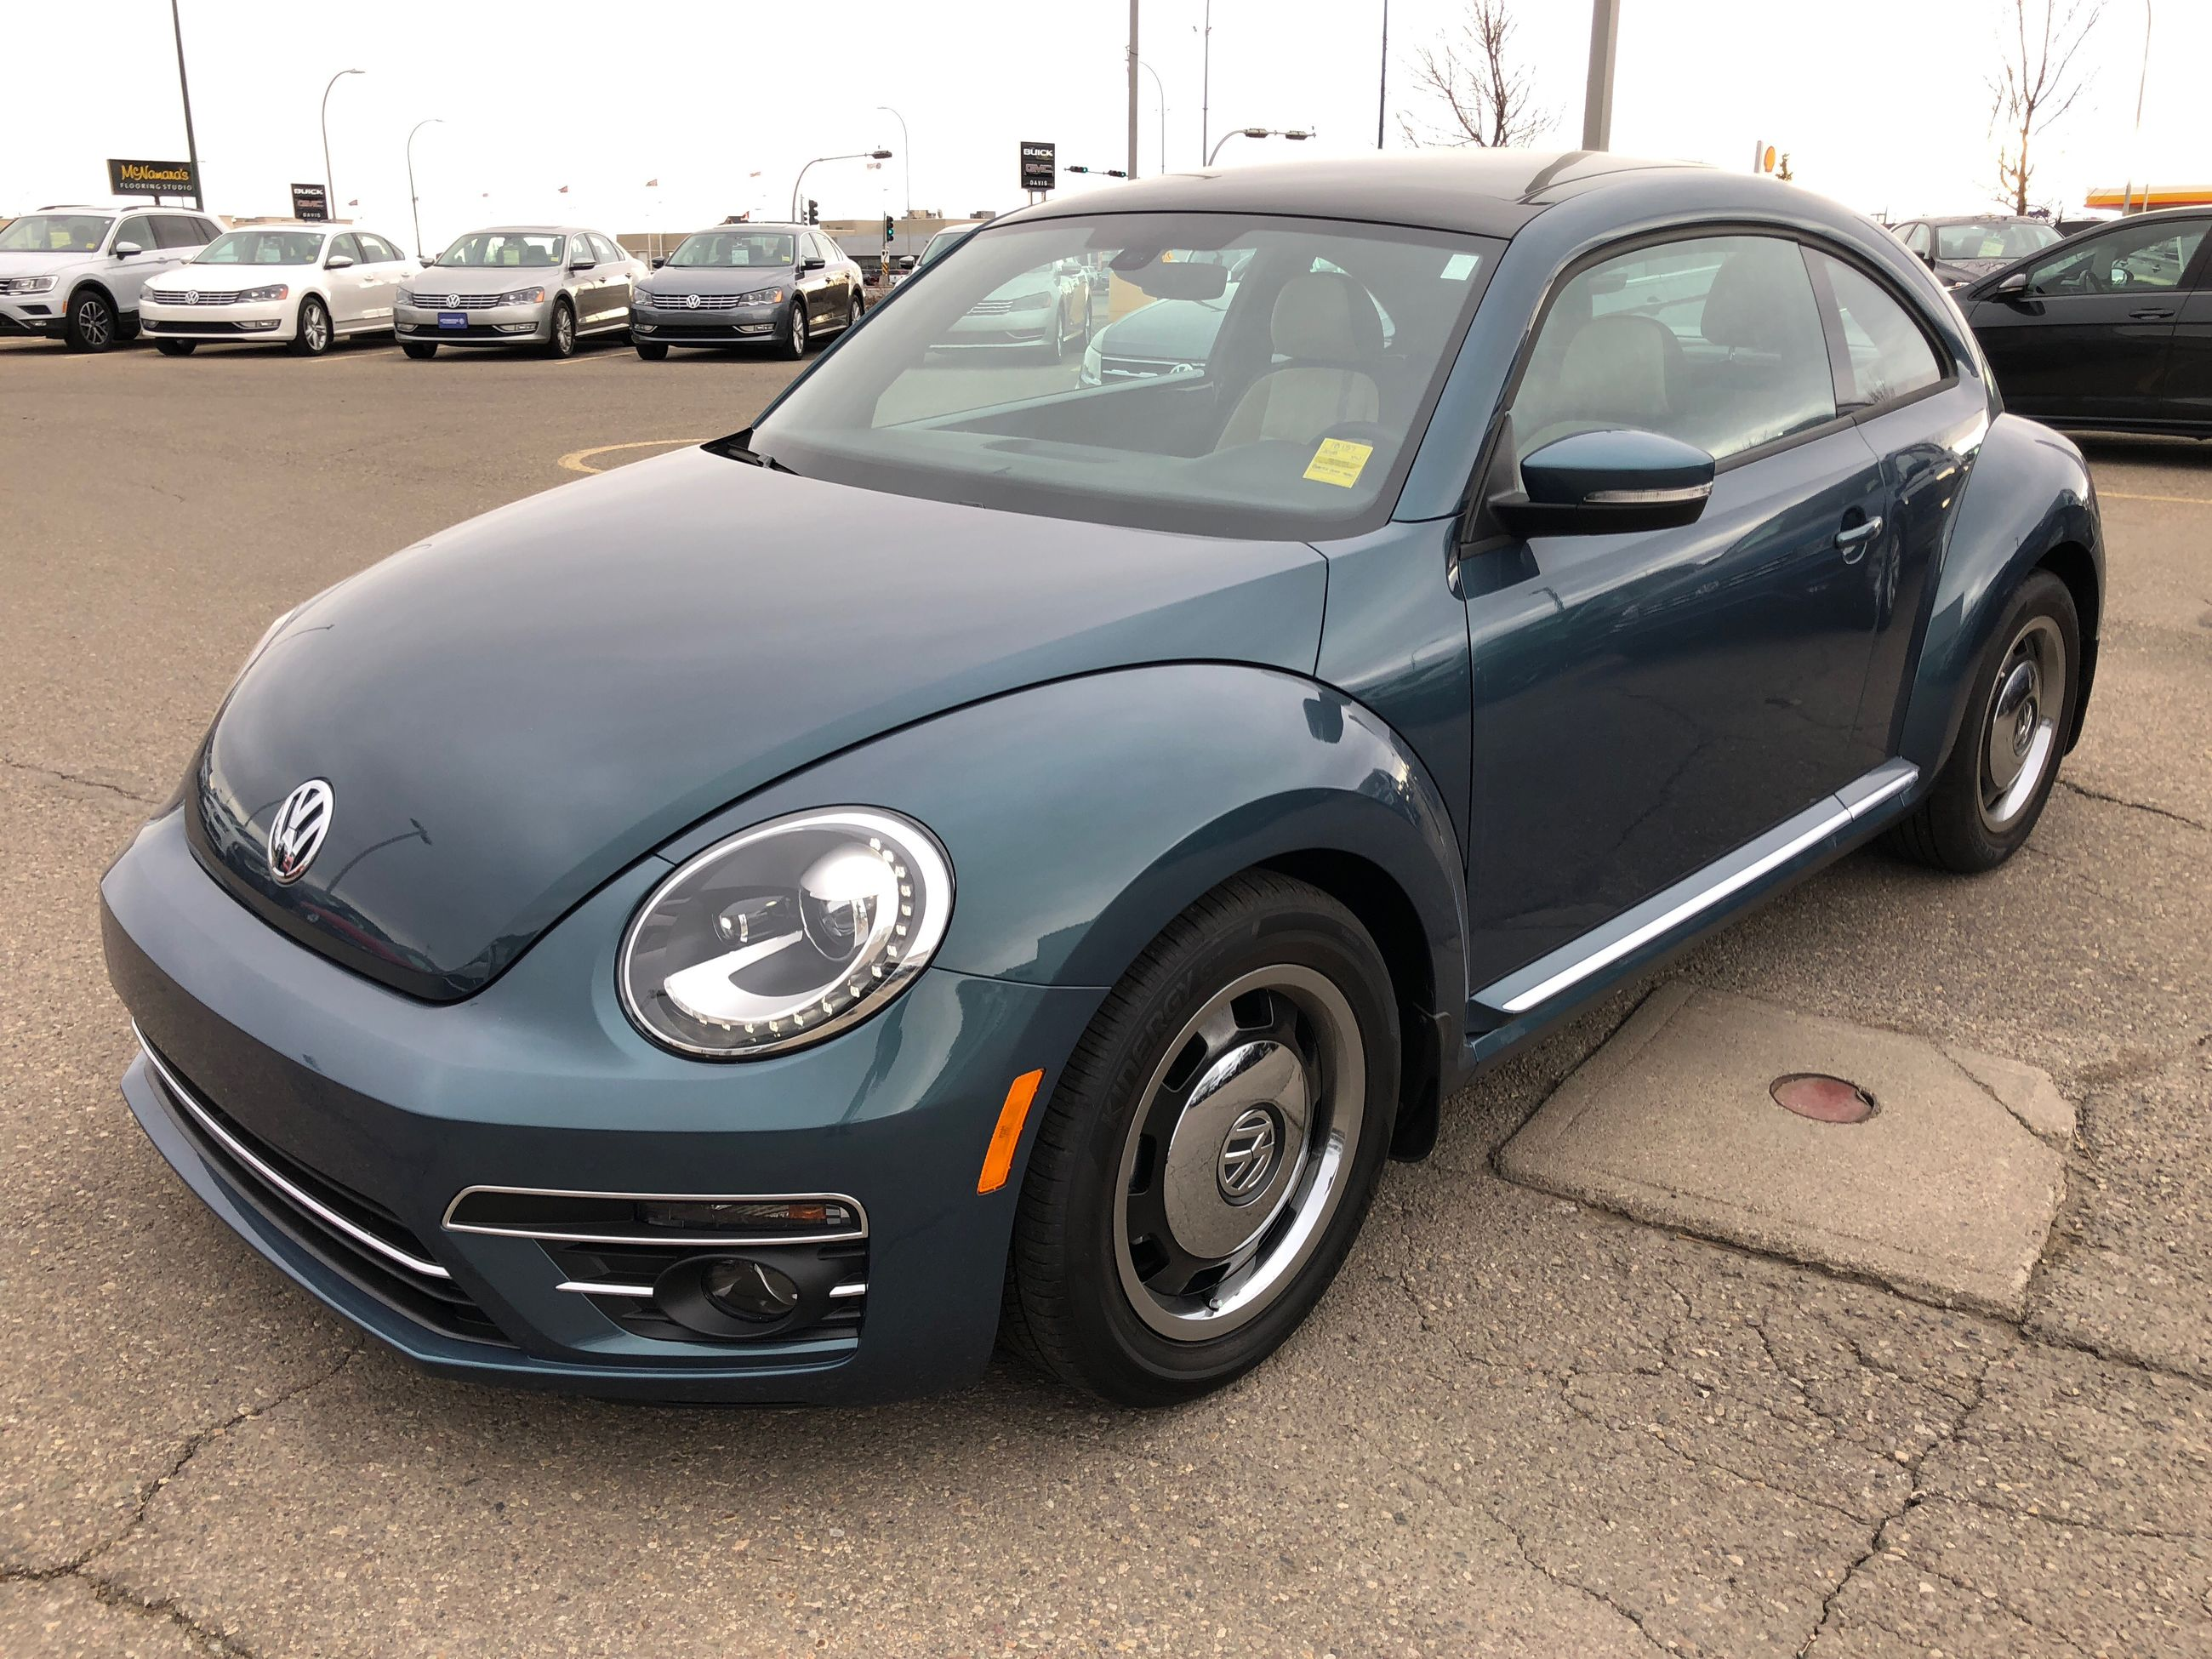 cars miles interior sister trans no engine open white clean car harbor cheap id recalls bay volkswagen wi egg owner vw sturgeon beetle carfax used auto in grey